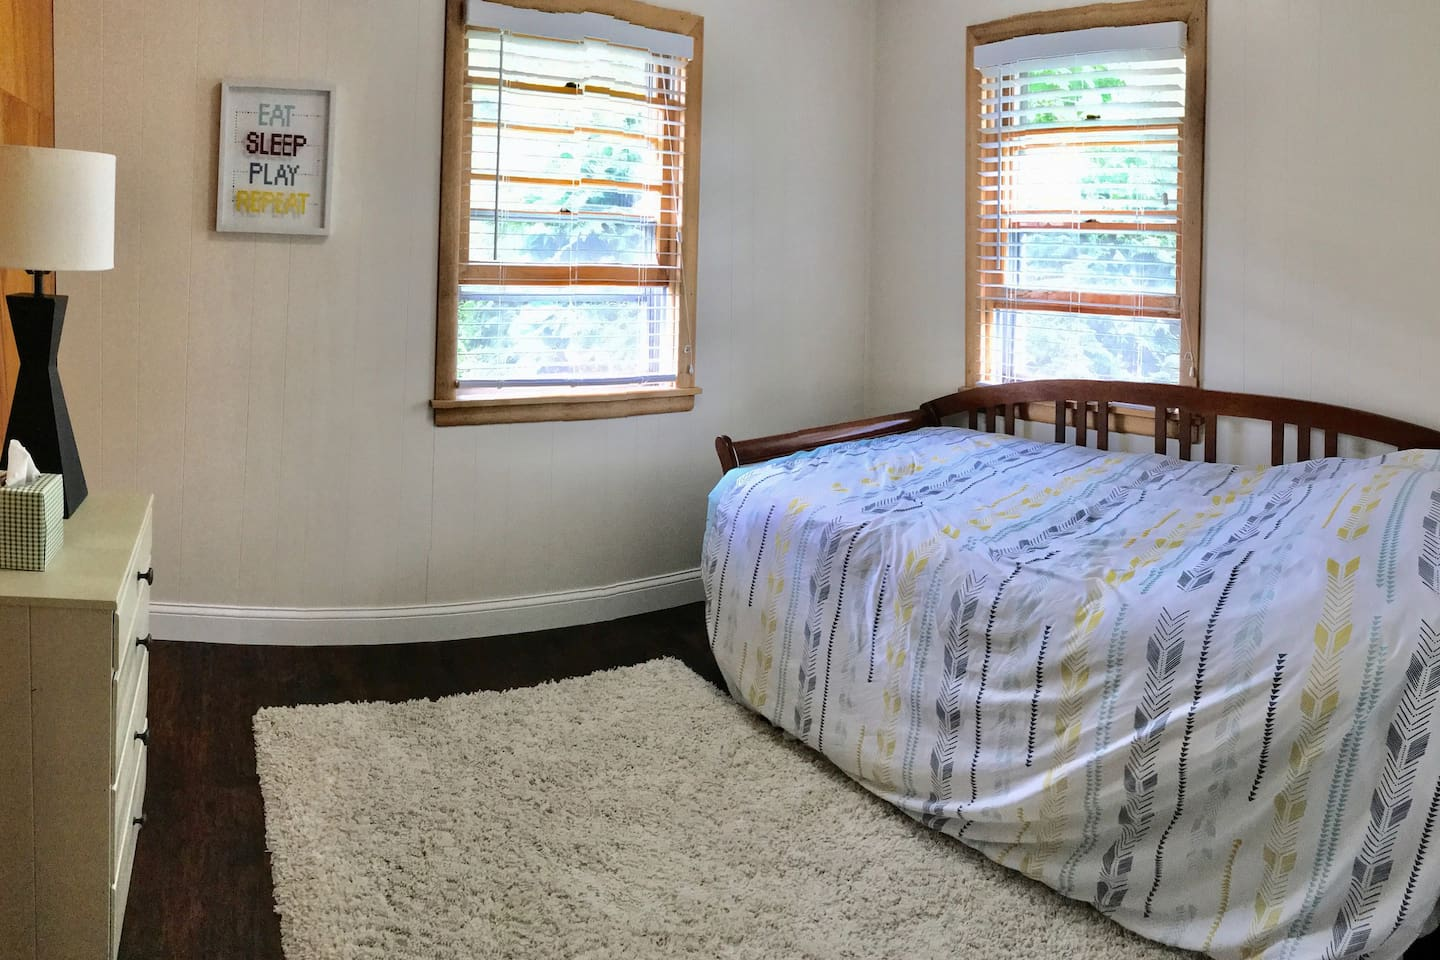 Upstairs bedroom #2. Daybed with trundle. Both twins